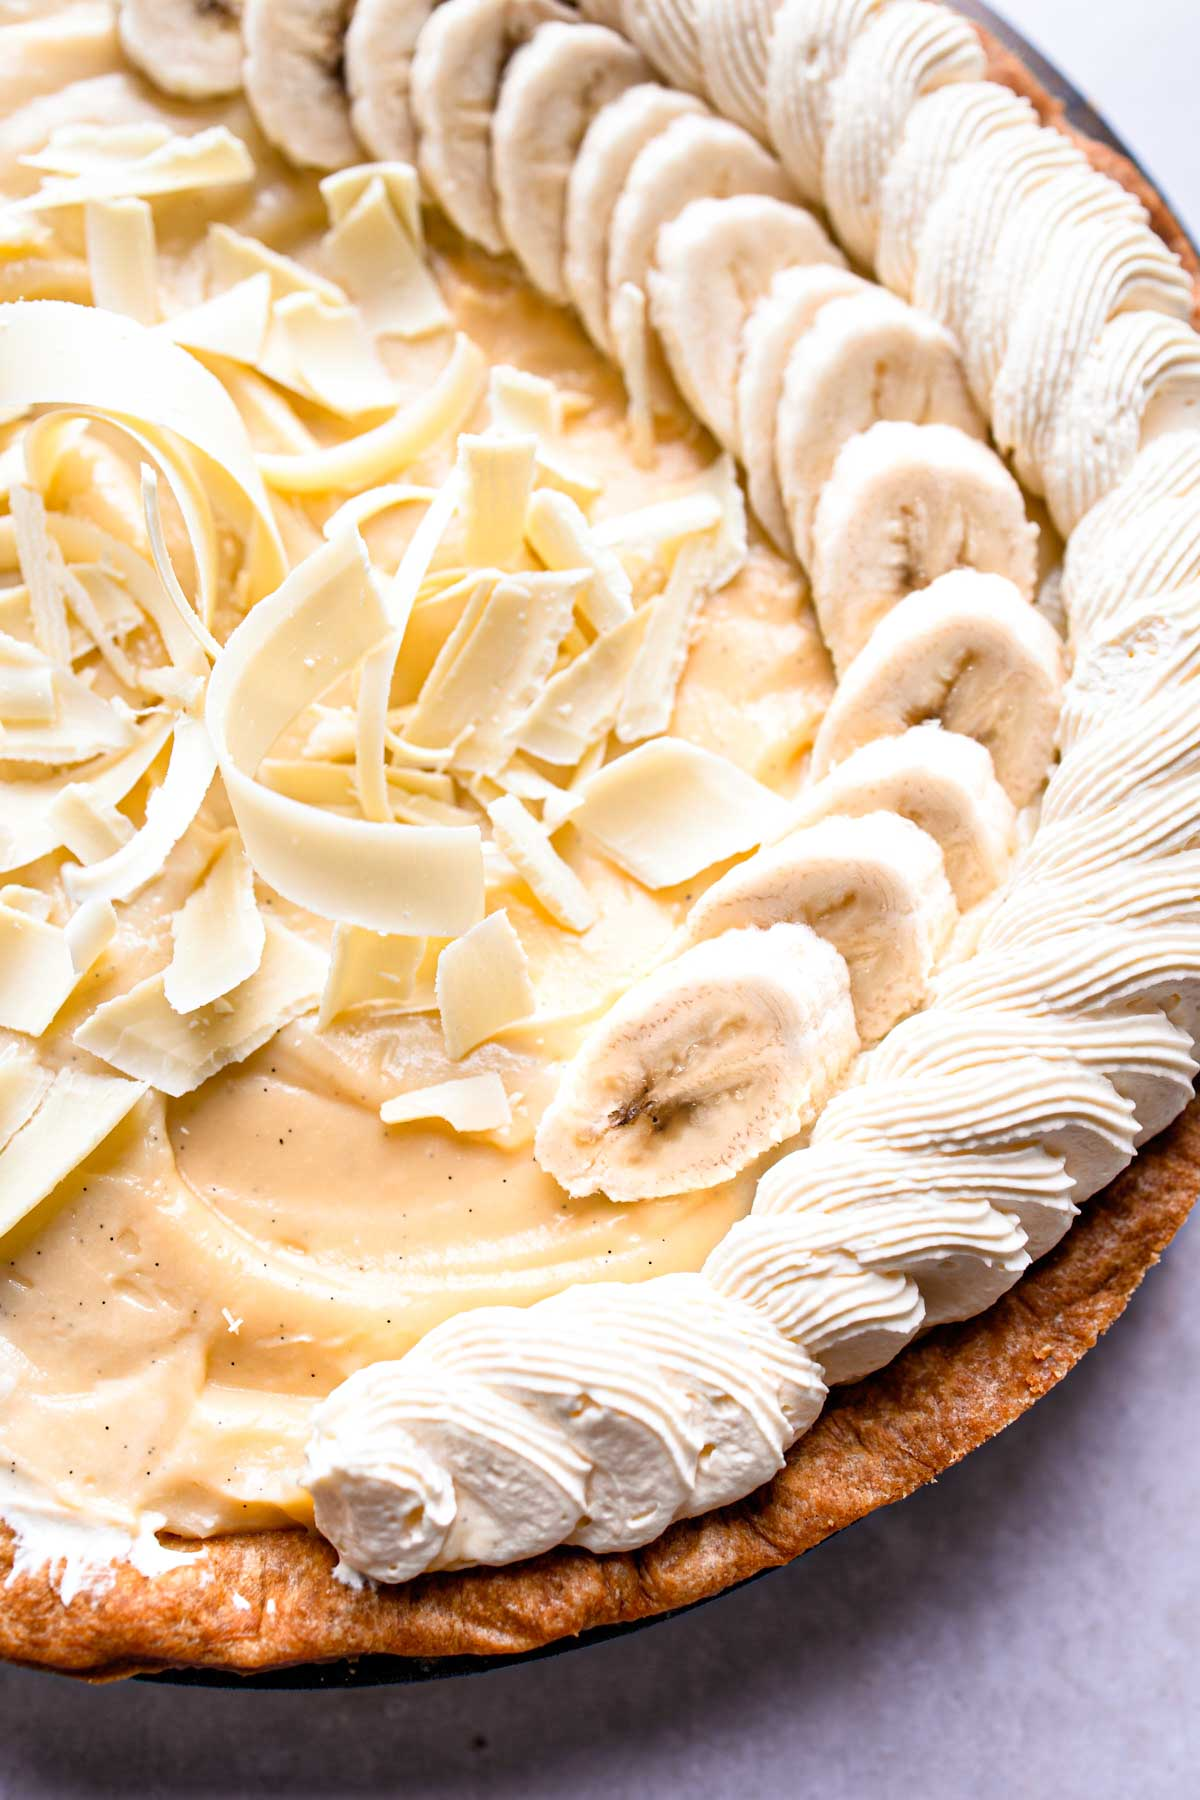 close up view of the completed banana cream pie